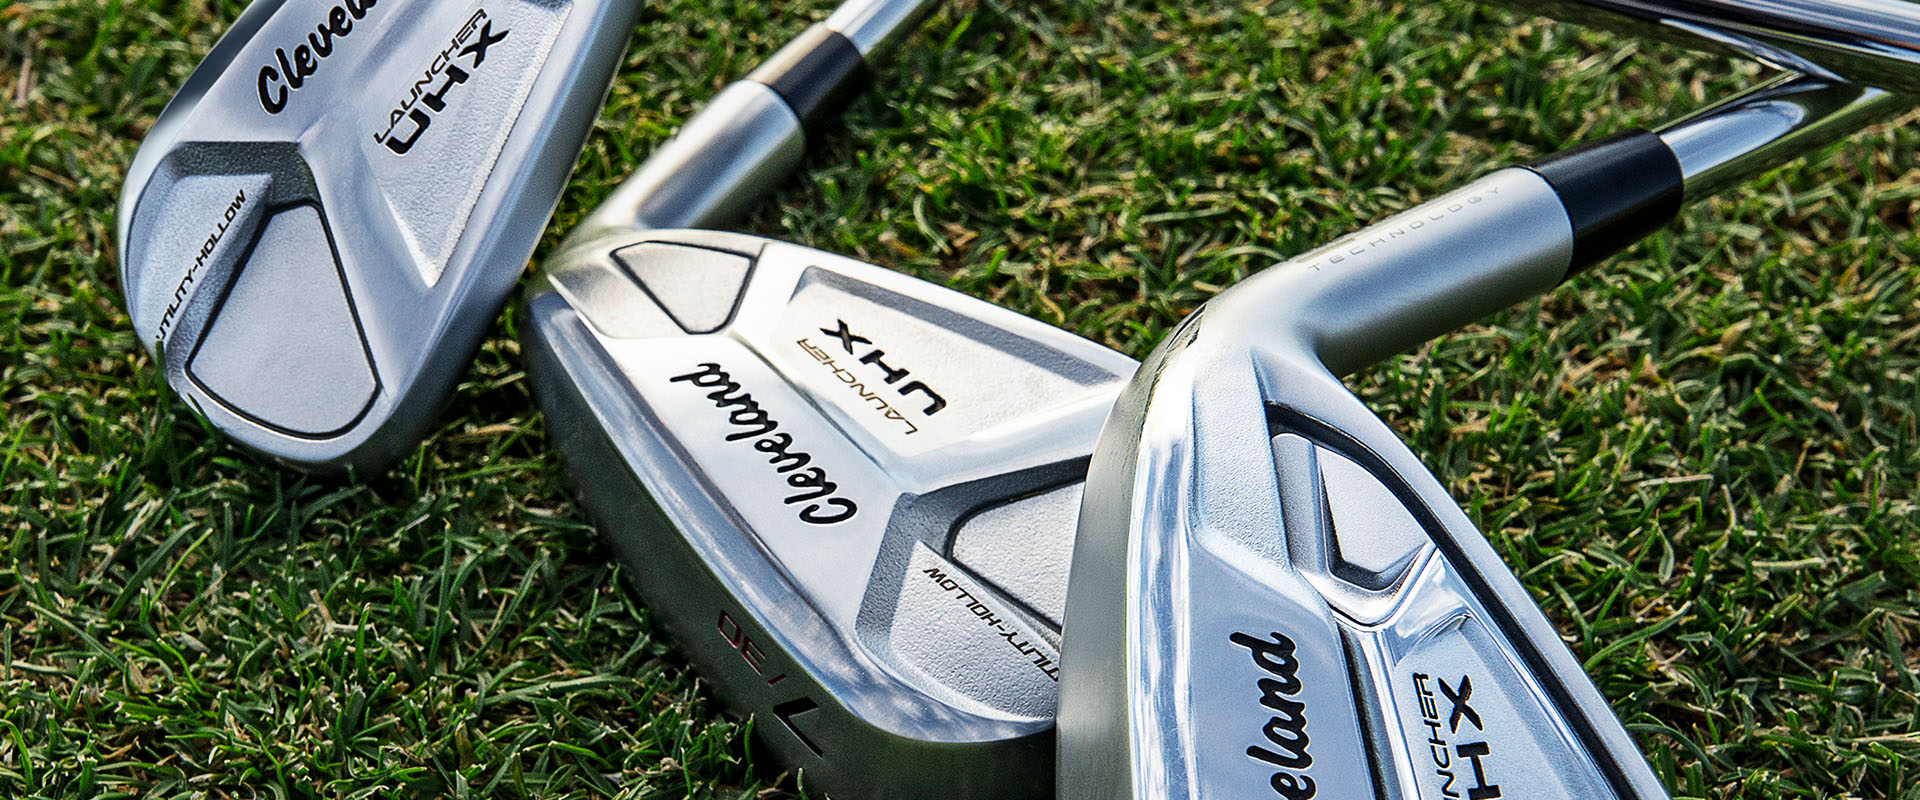 Cleveland Golf  Launcher HB Turbo Irons more fairway